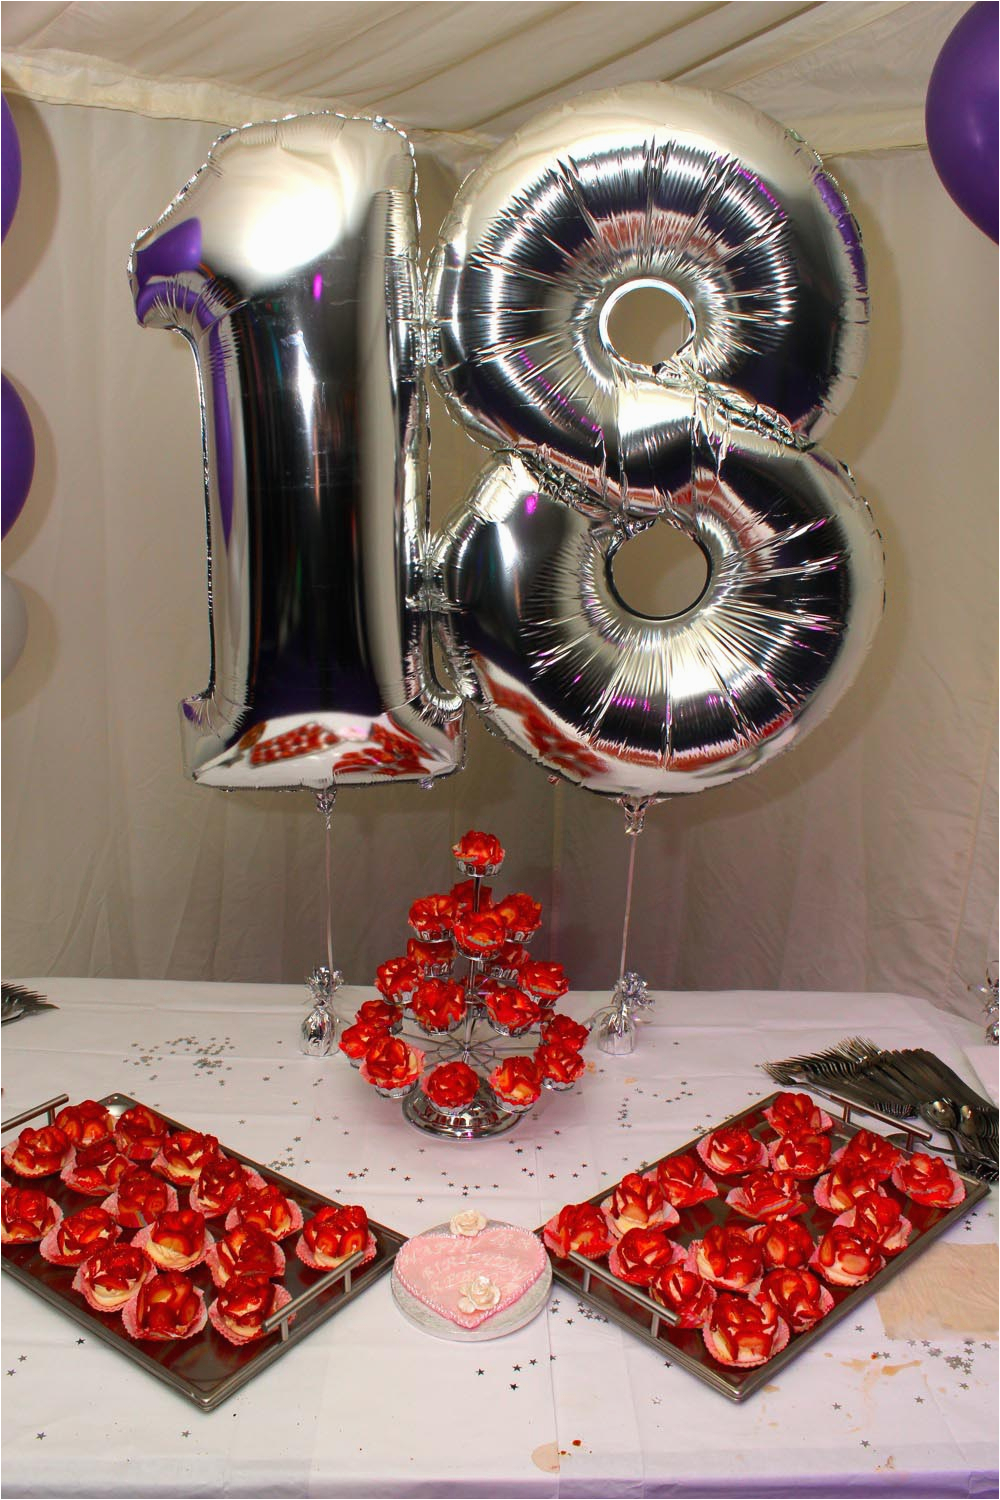 18 Birthday Party Decoration Ideas Birthdaybuzz - Home-party-decoration-ideas